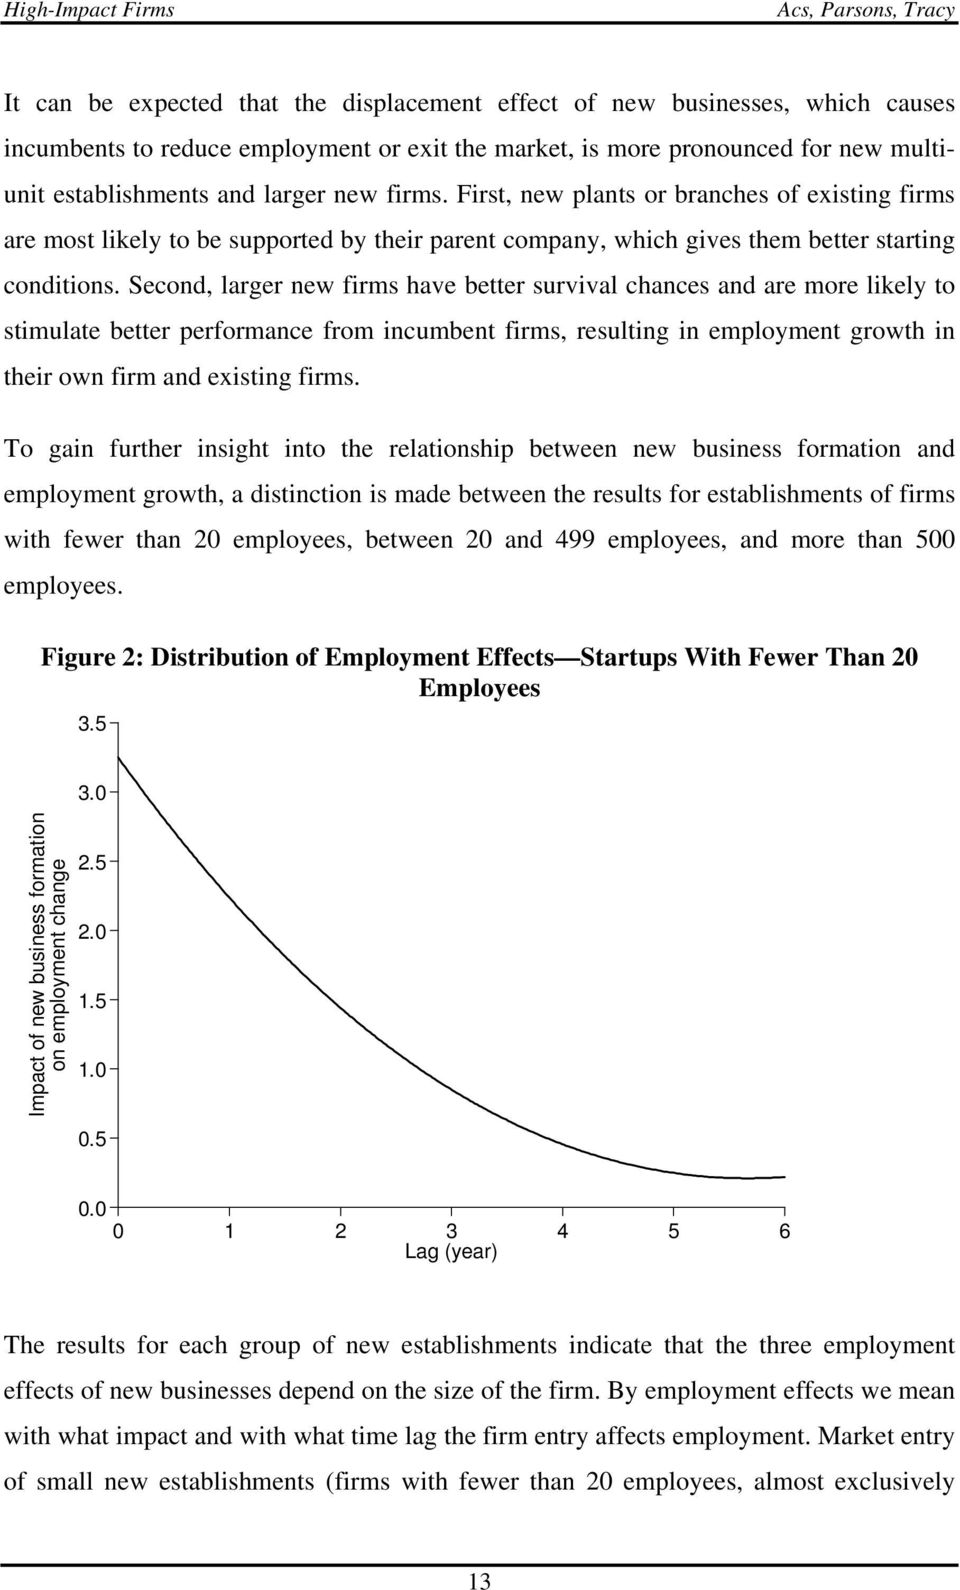 Second, larger new firms have better survival chances and are more likely to stimulate better performance from incumbent firms, resulting in employment growth in their own firm and existing firms.